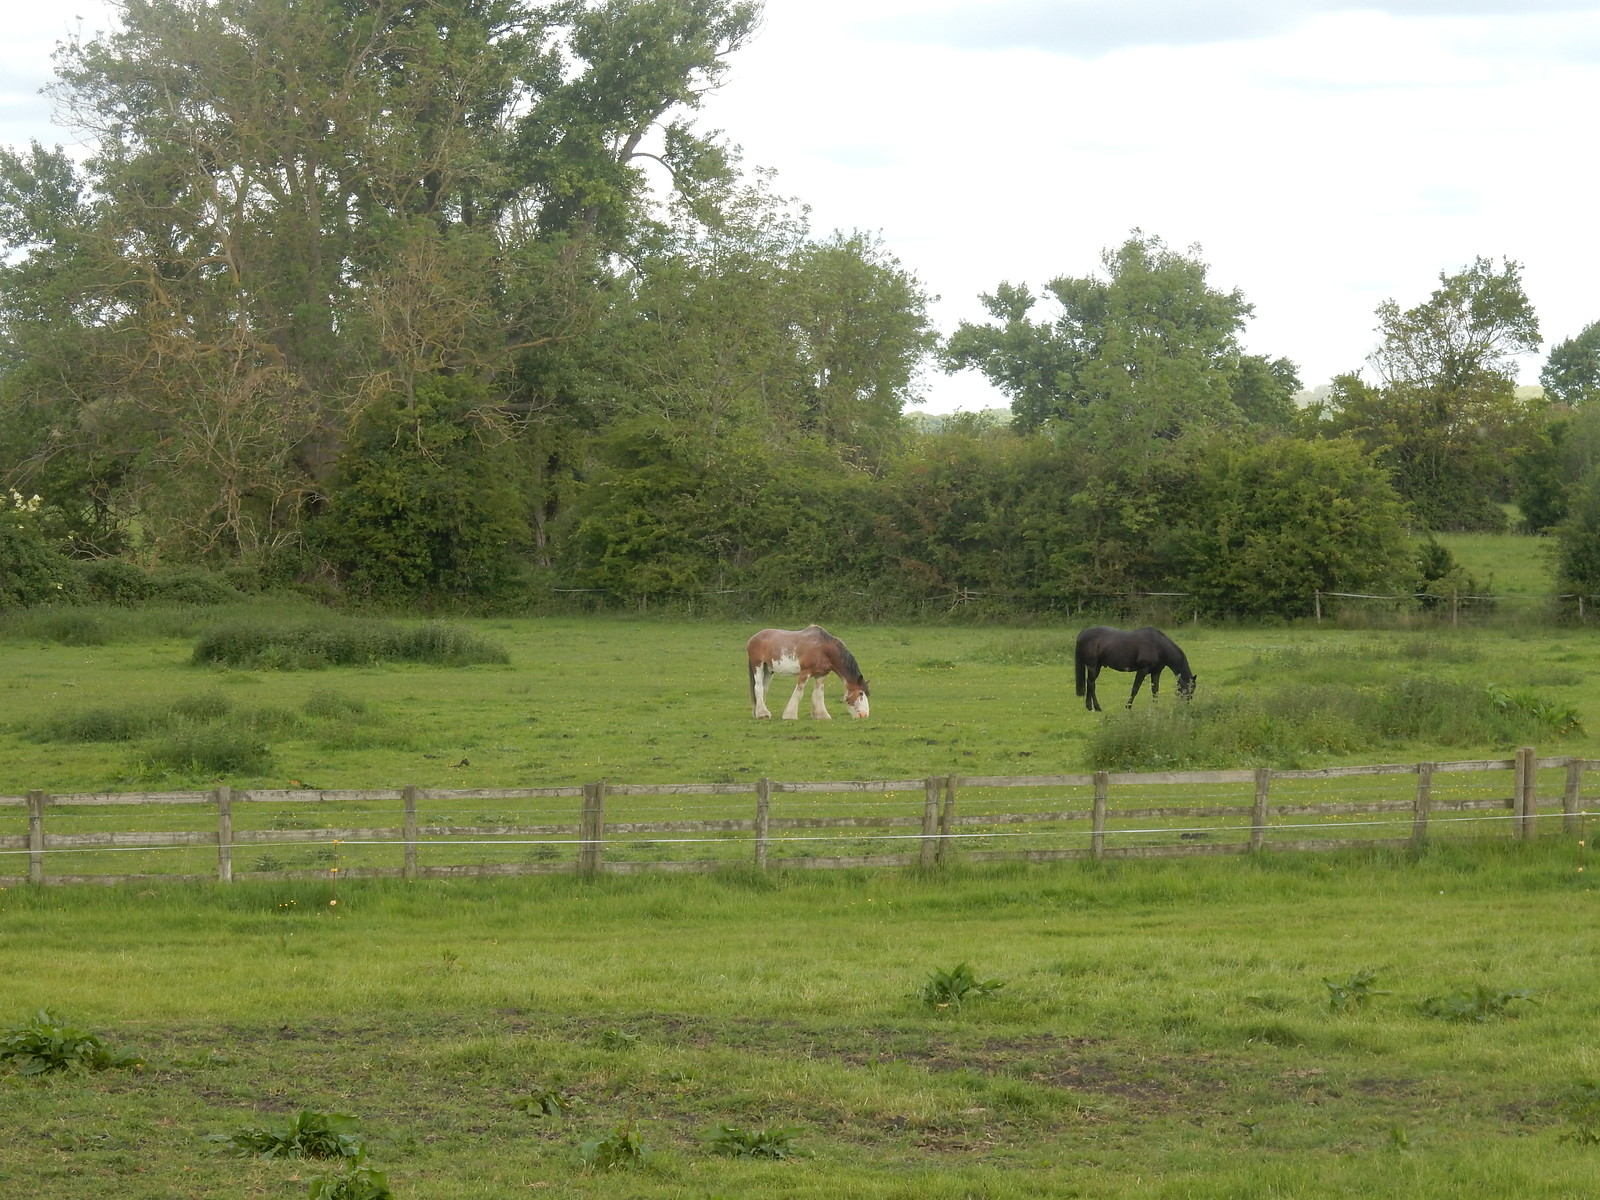 Horses in a field Cholsey to Goring